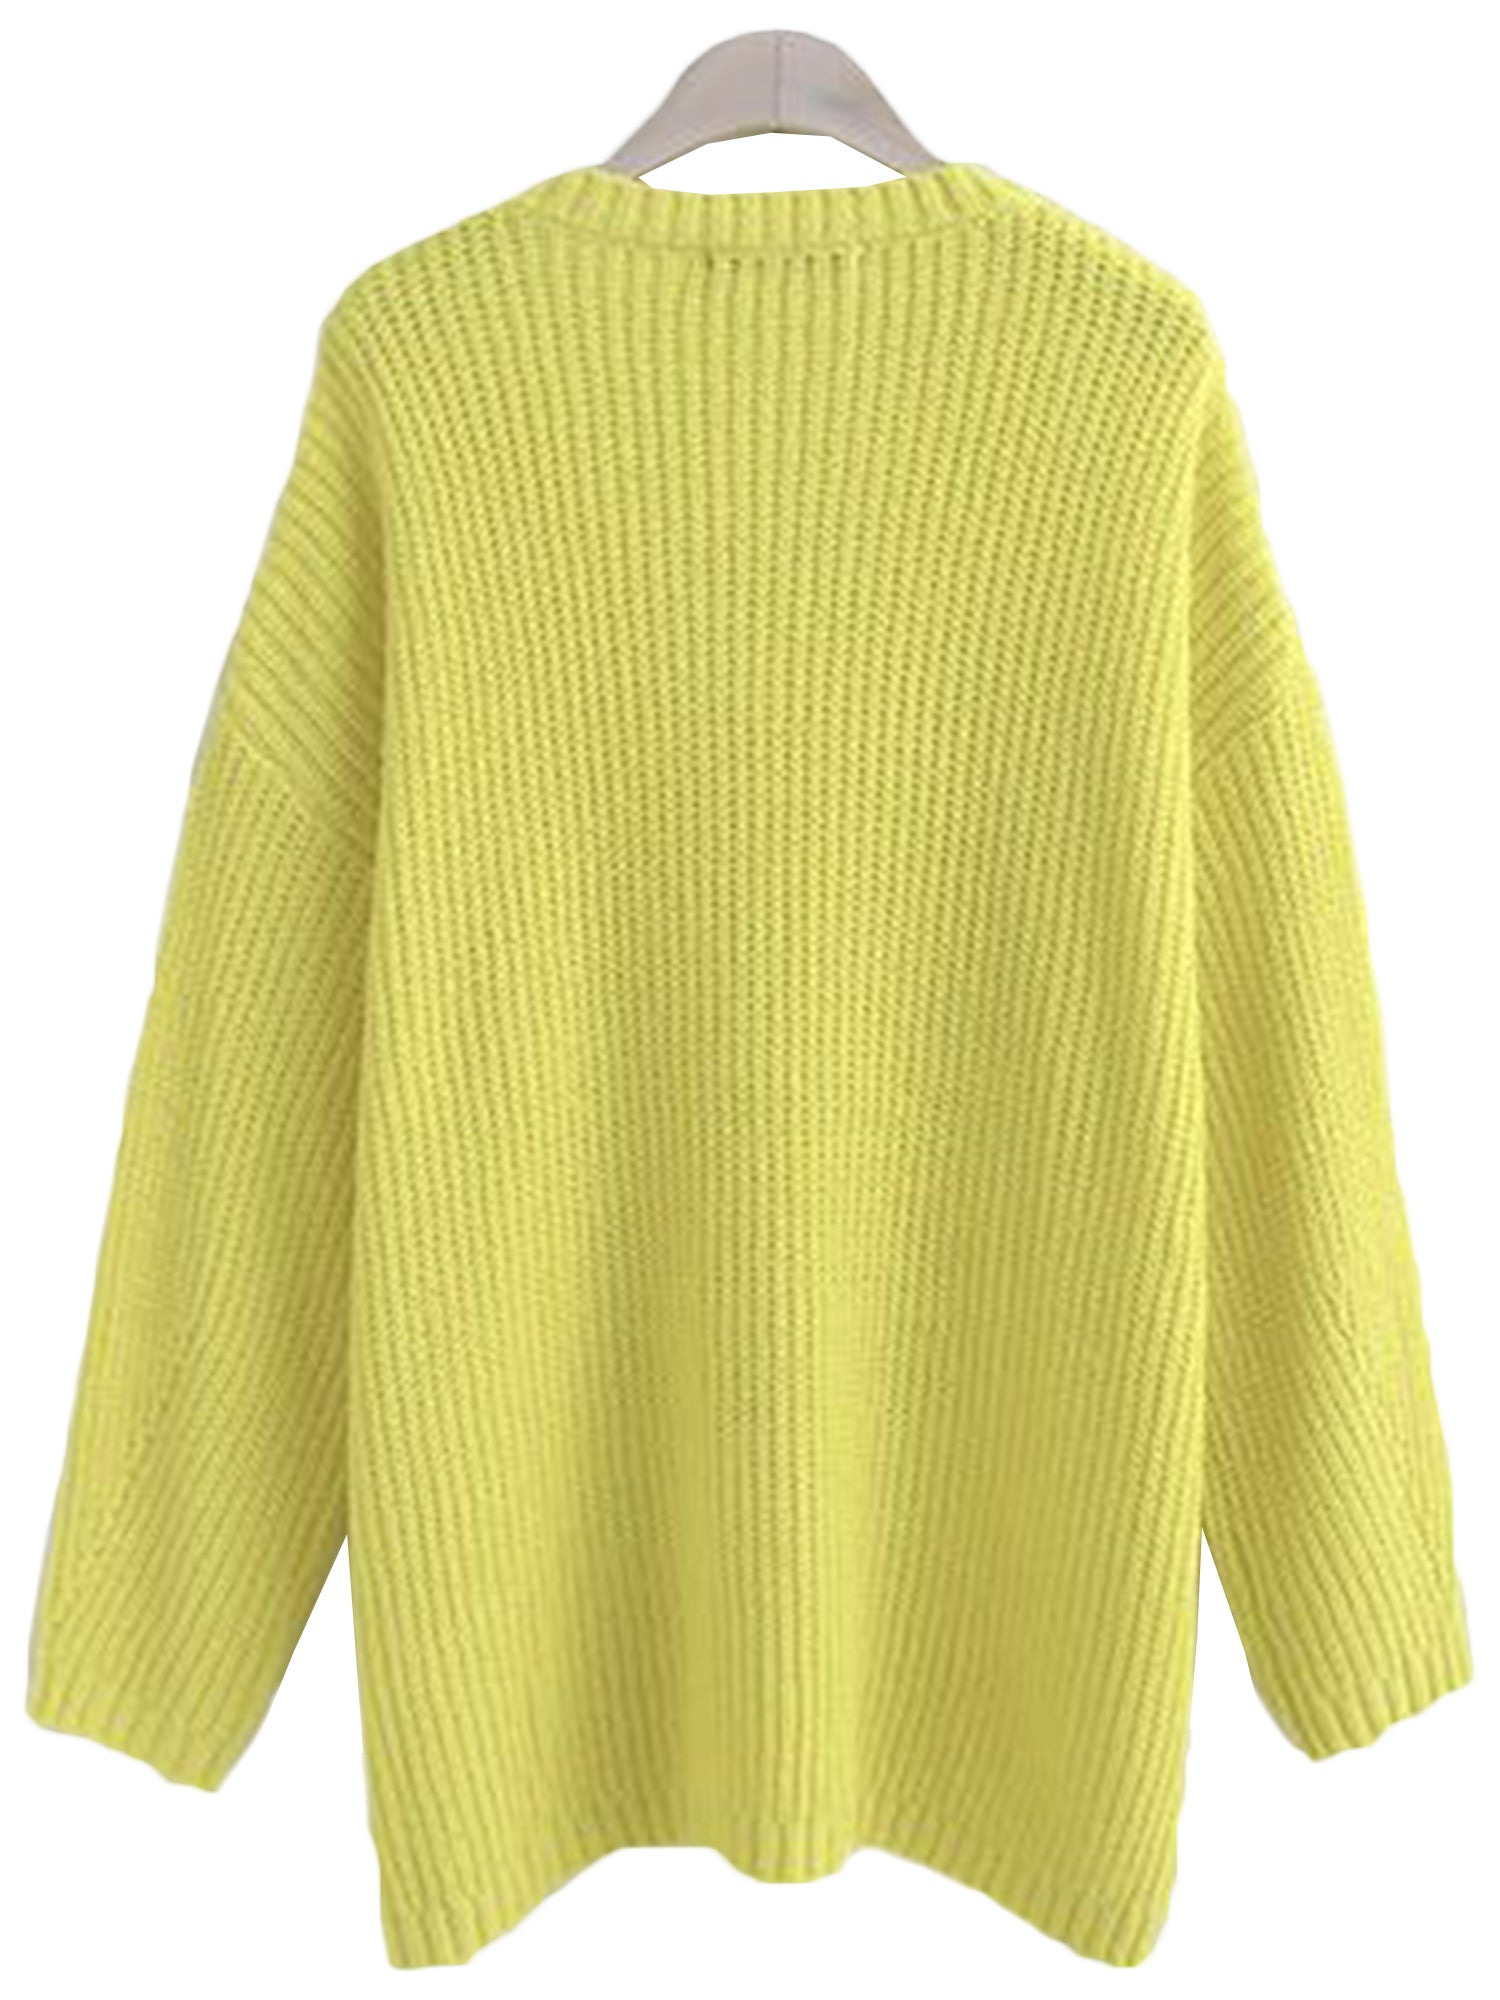 'Linda' Yellow V-neck Sweater